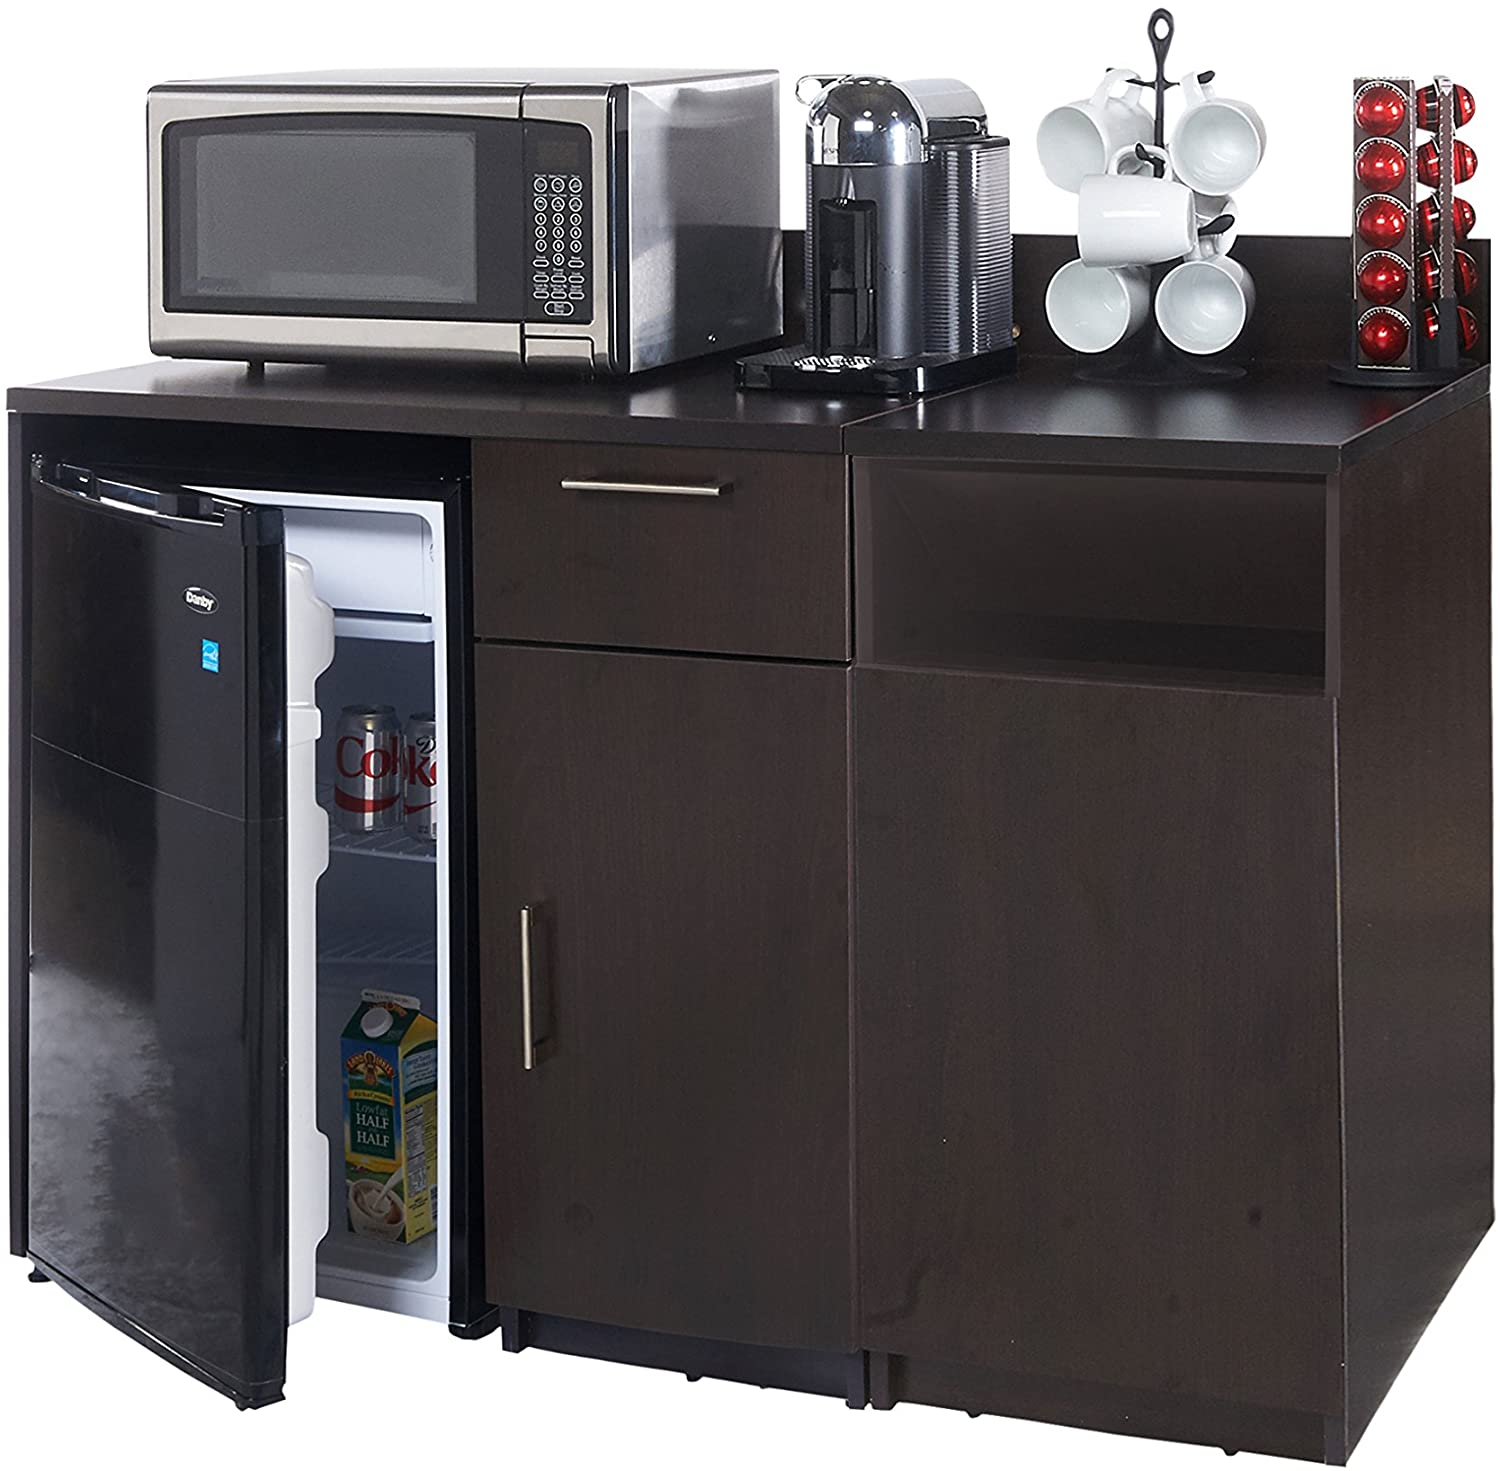 Breaktime 2 Piece 3267 Coffee Kitchen Lunch Break Room Furniture Cabinets Fully Assembled Ready to Use, Instantly Create Your New Break Room, Espresso